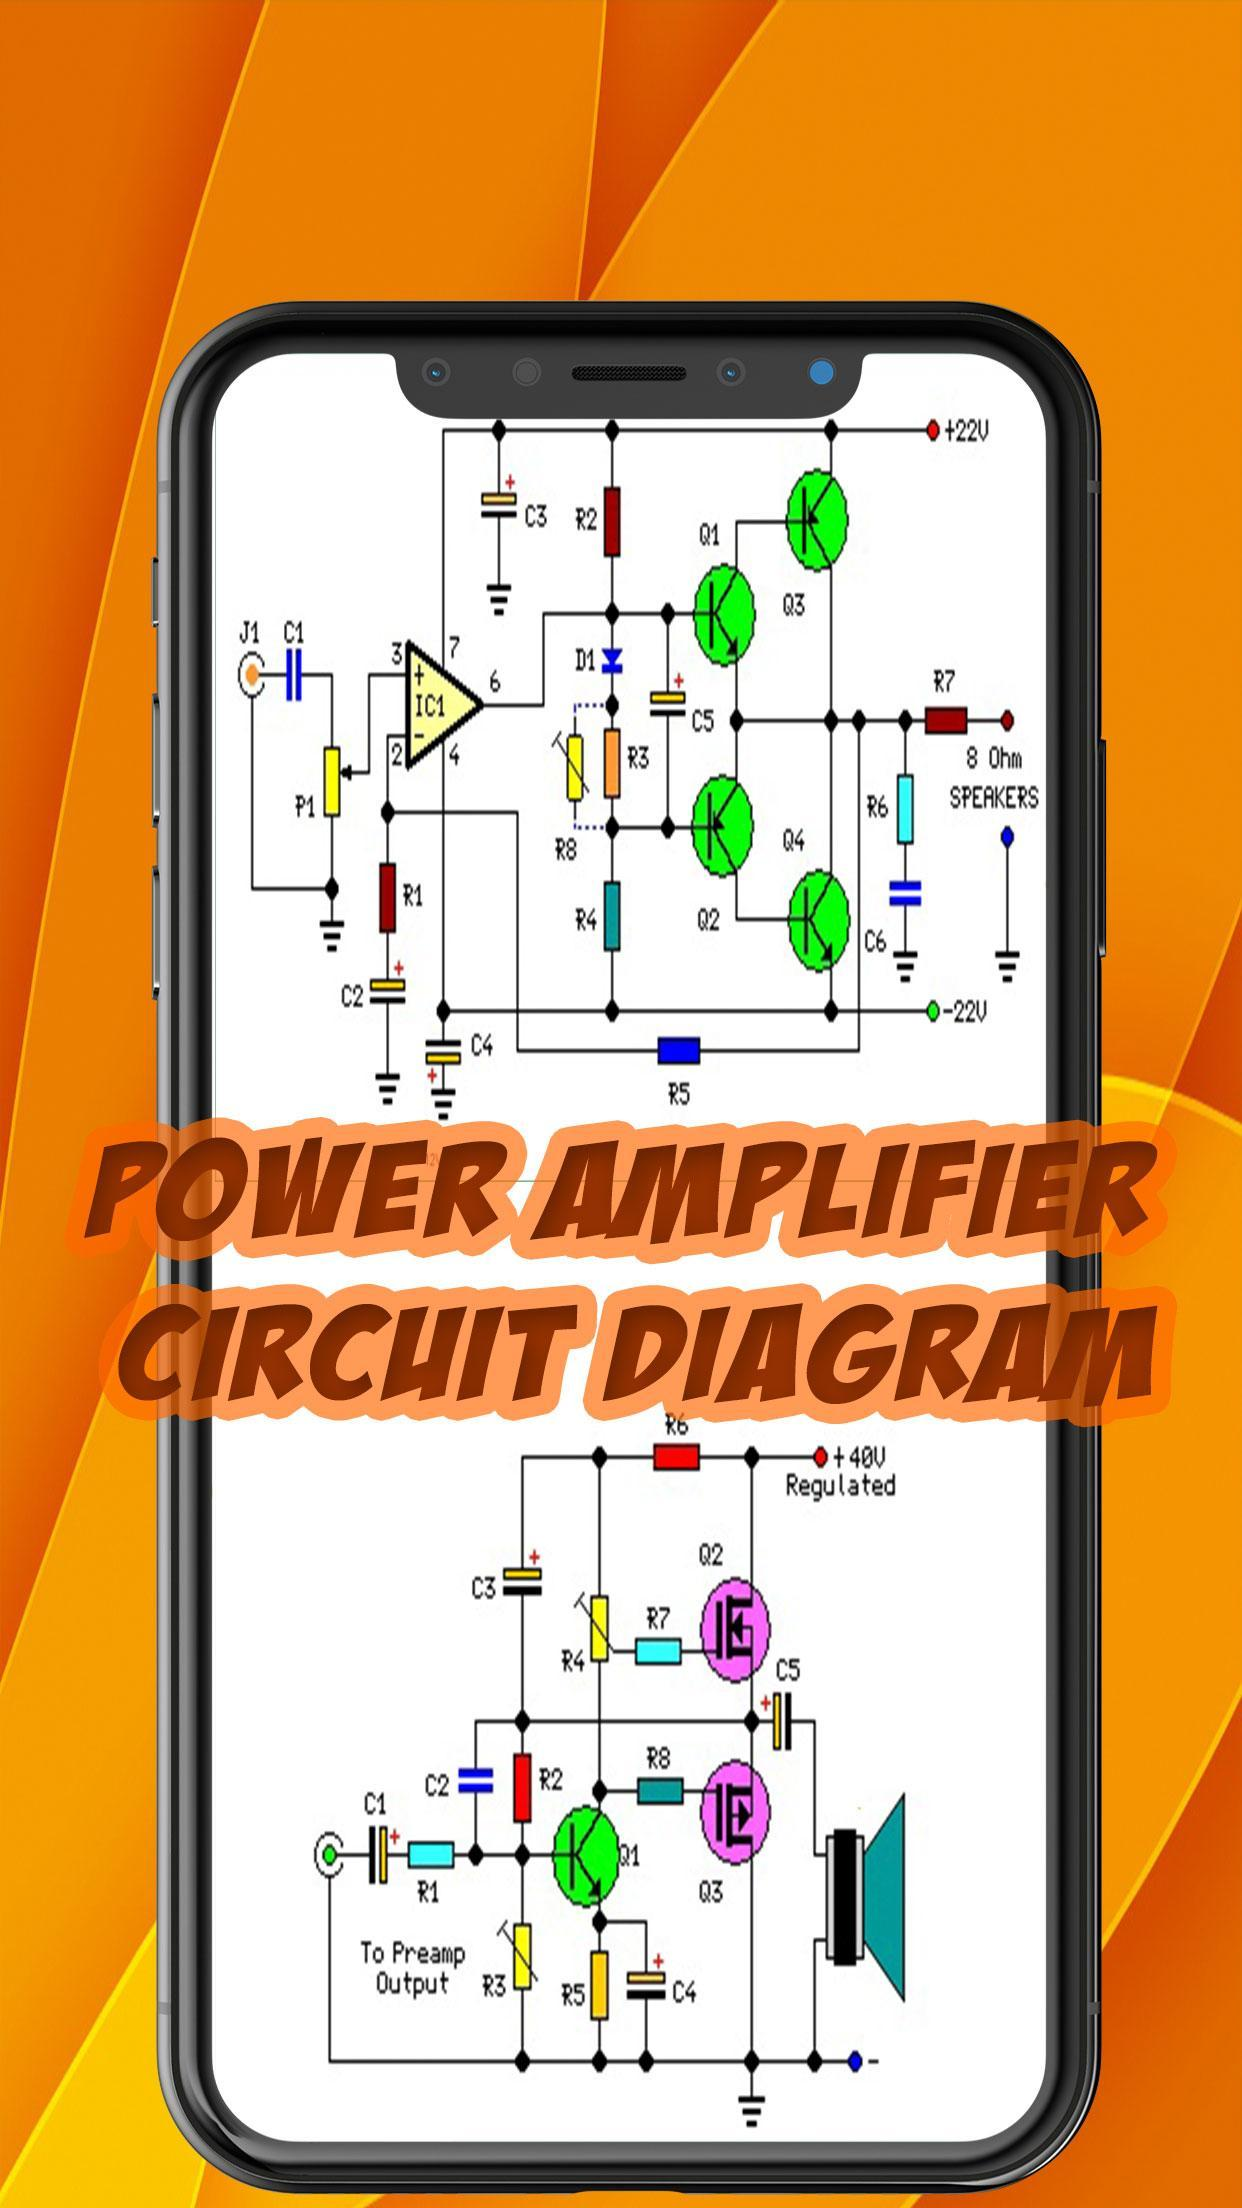 power amplifier circuit diagram for Android - APK Download on